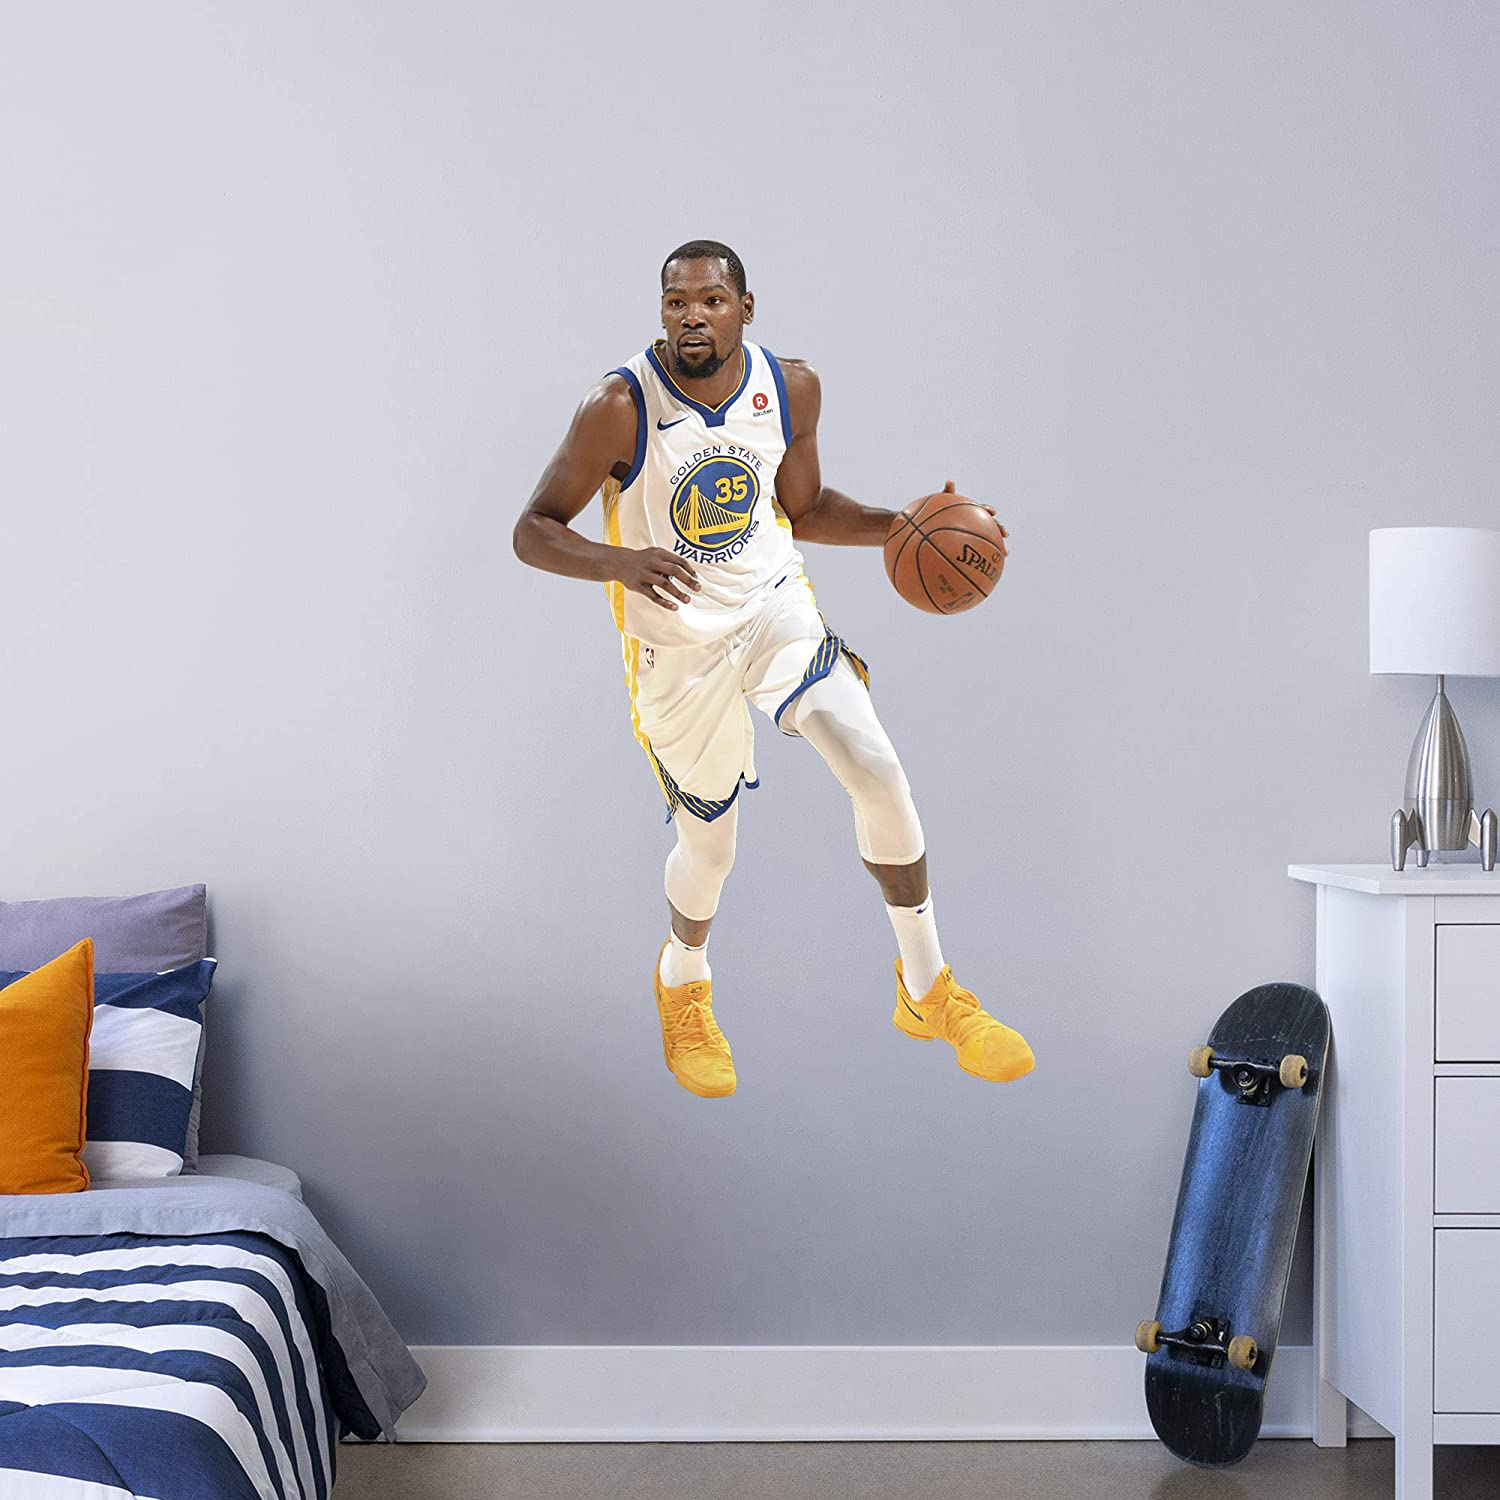 Fathead NBA Golden State Warriors Kevin Durant Kevin Durant- Officially Licensed Removable Wall Decal, Multicolor, Giant - 1900-00306-003